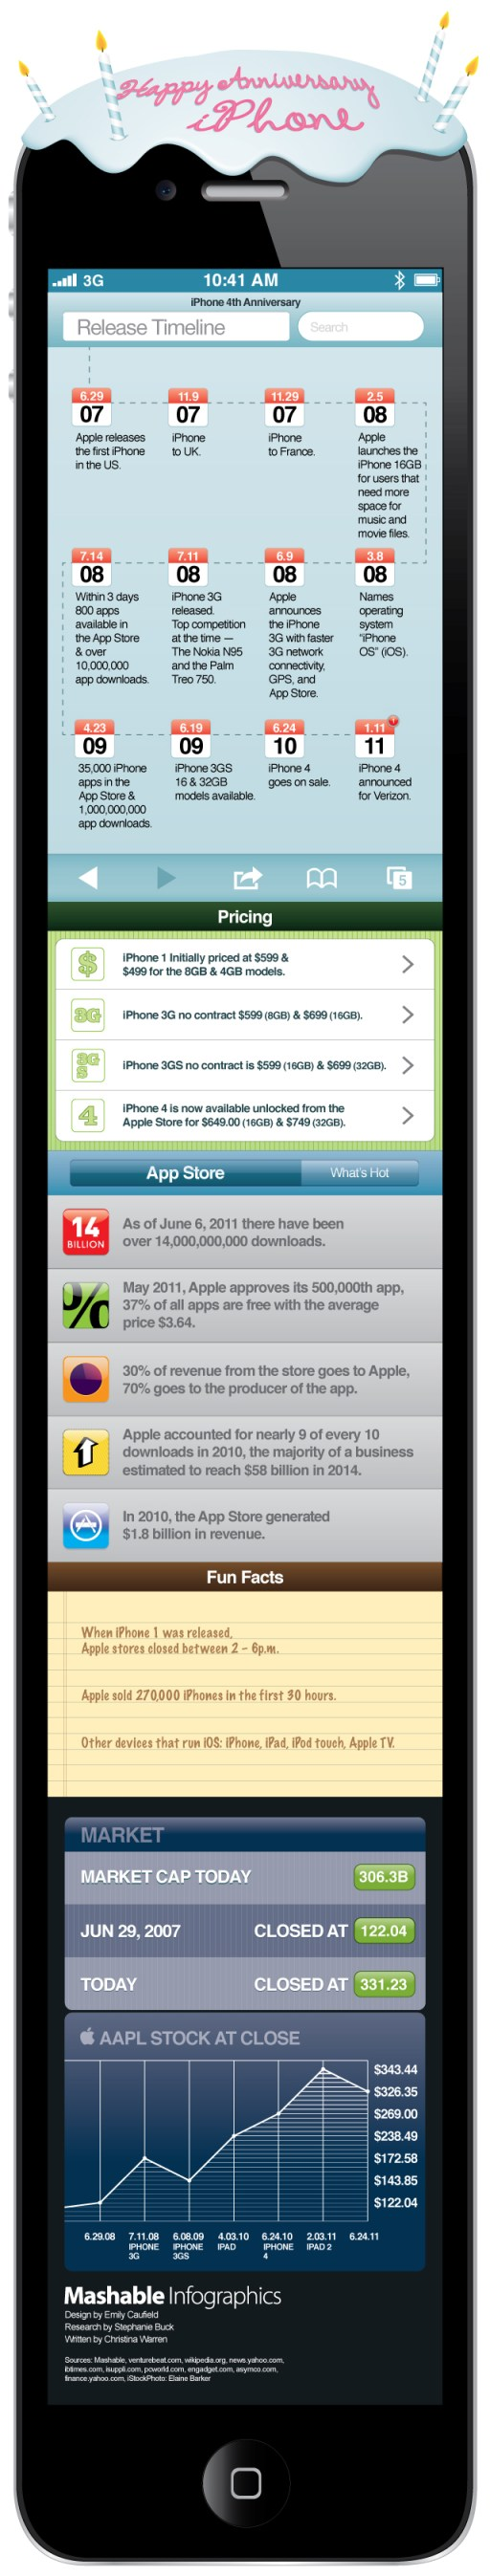 ¡Felices 4 años iPhone! [Infografía] - mashable_infographics-iphone_anniversary